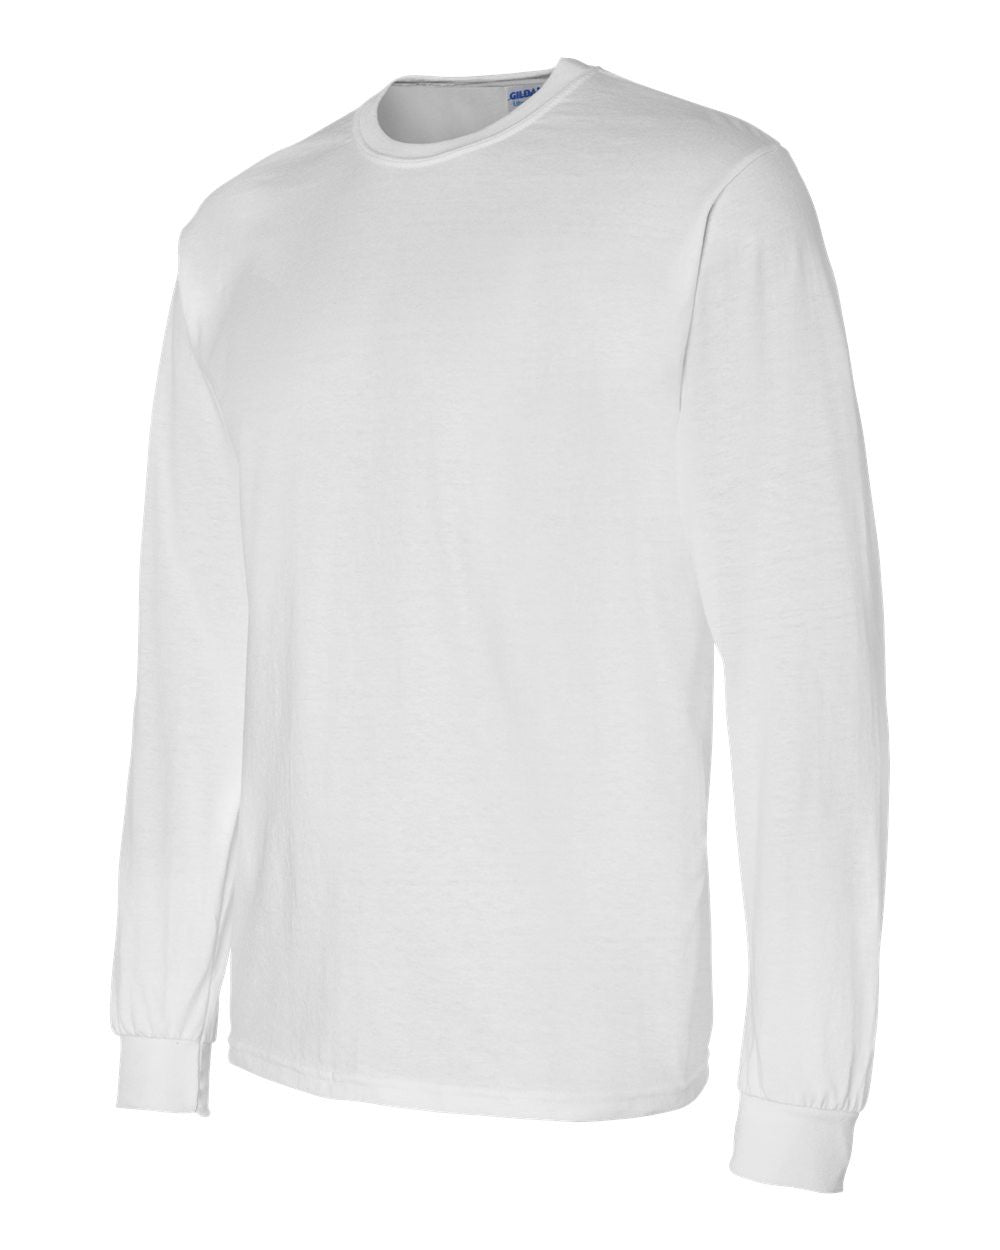 8400- DryBlend 50/50 Long Sleeve T-Shirt